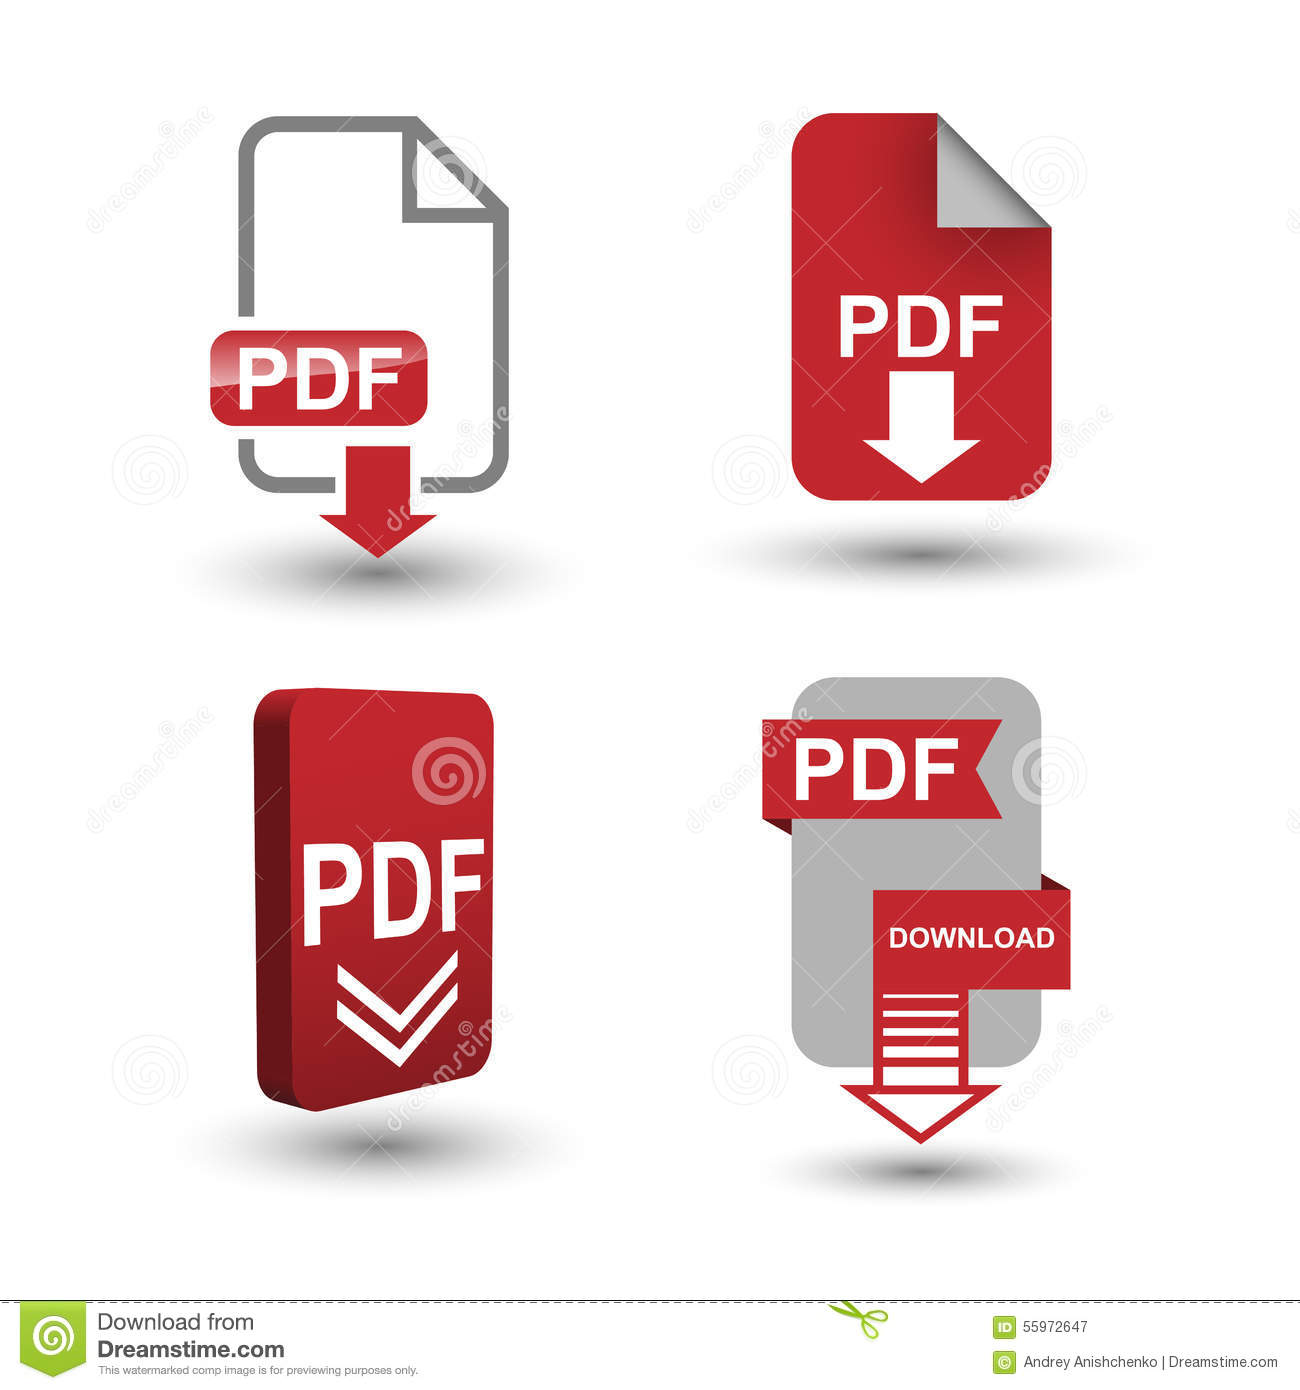 PDF Download Icons Stock Vector. Illustration Of Download